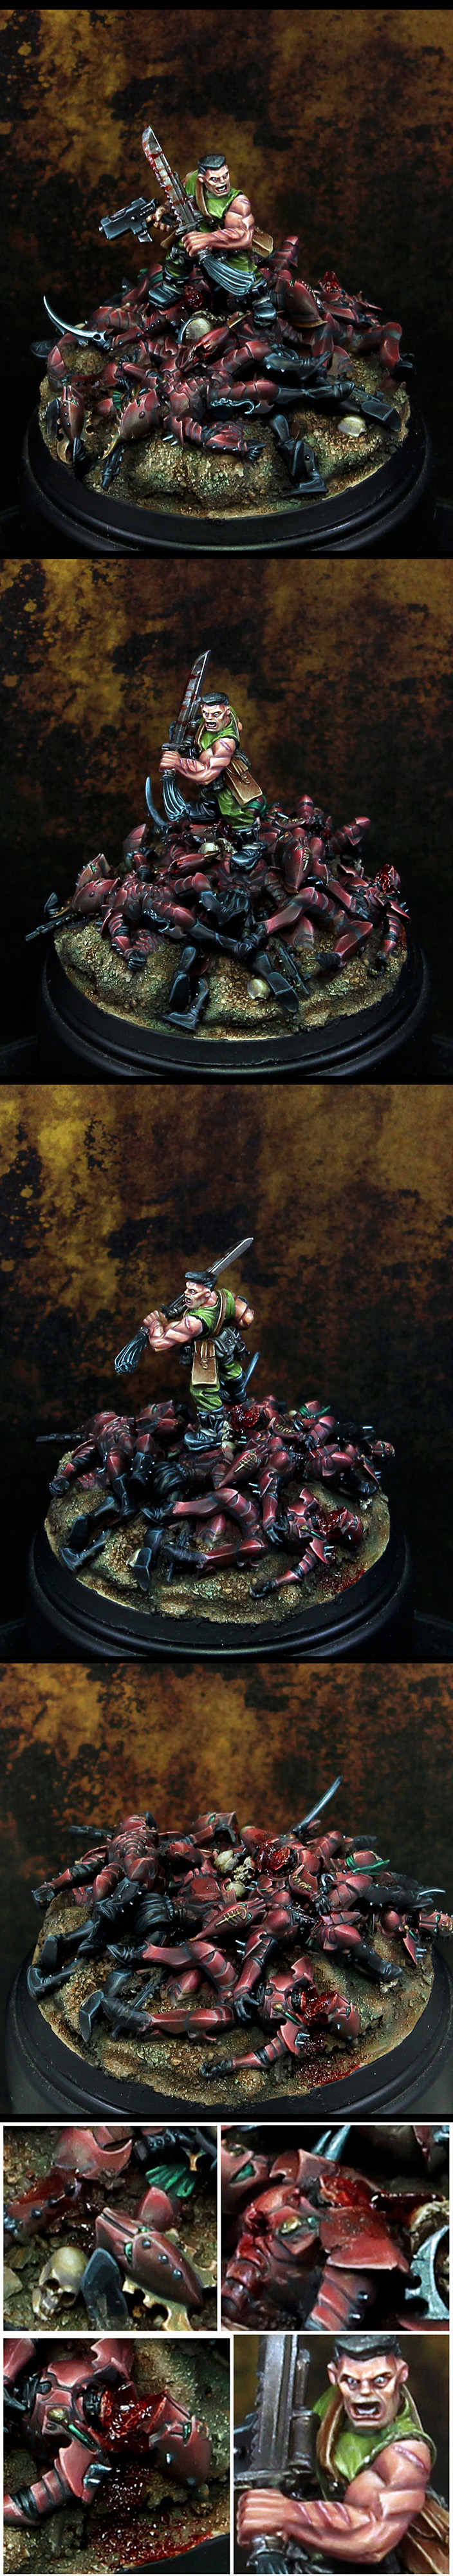 Sly marbo and the pile of corpses